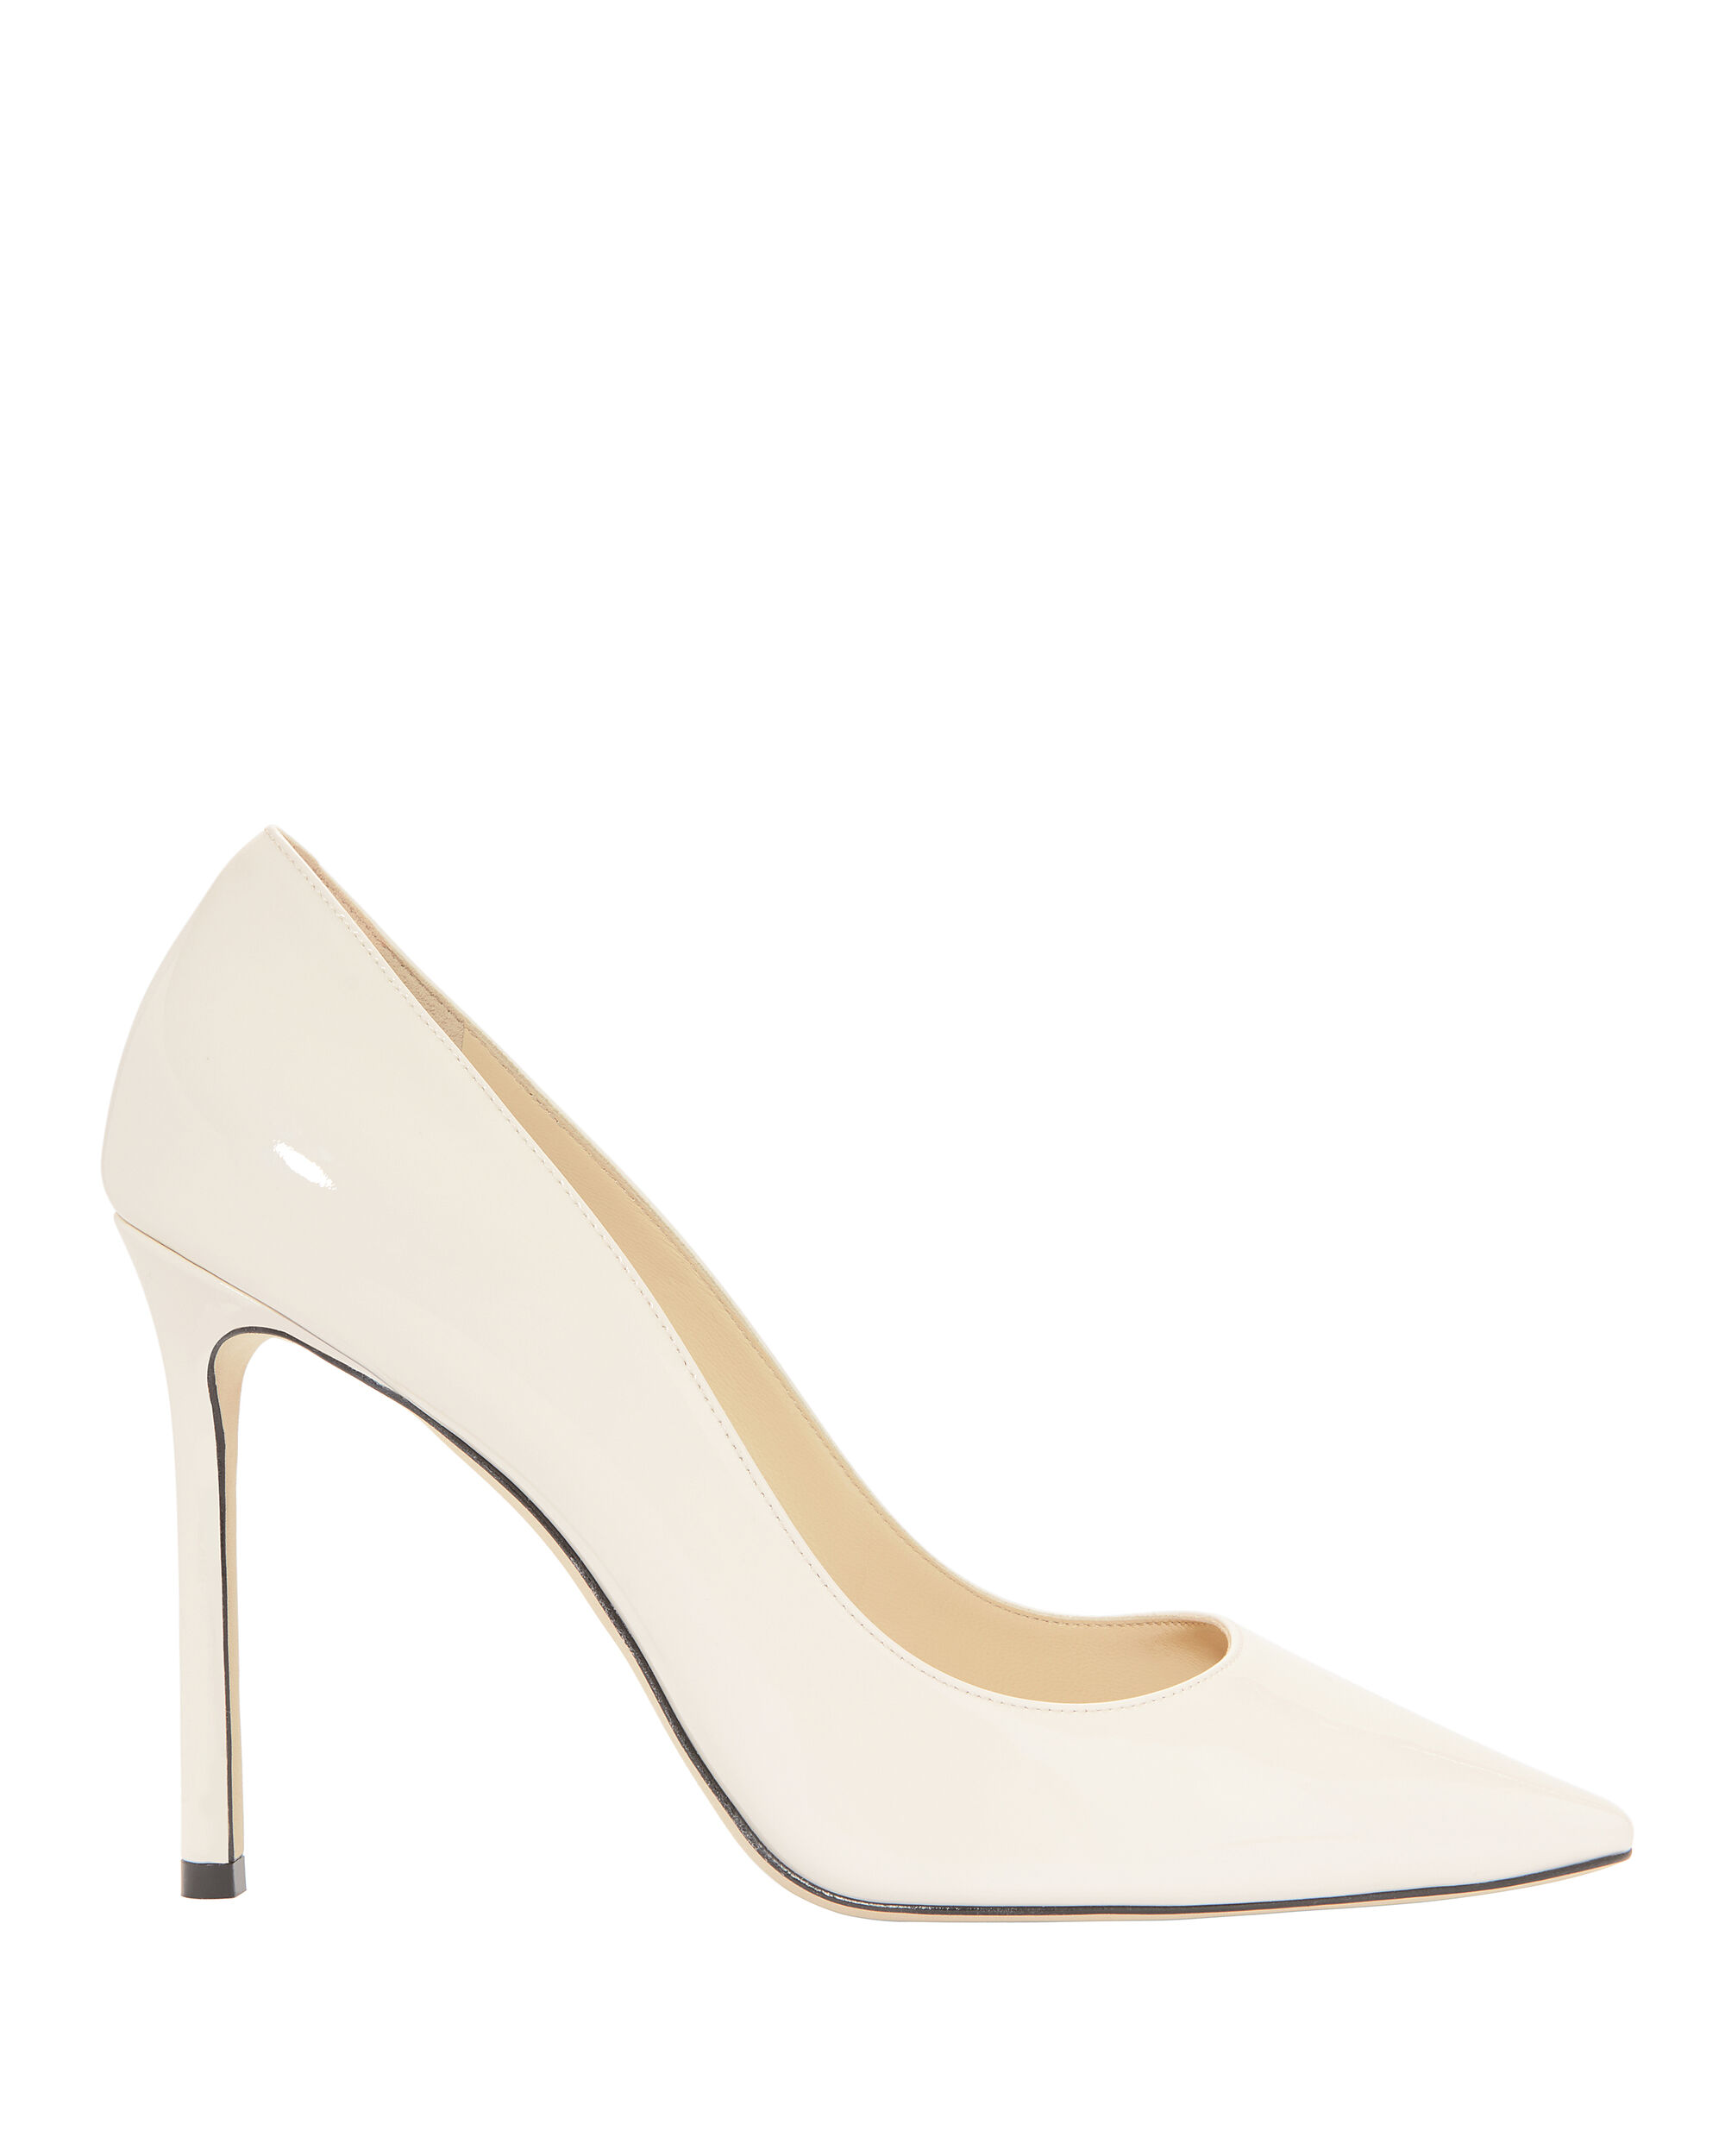 Romy White Patent Leather Pumps, WHITE, hi-res